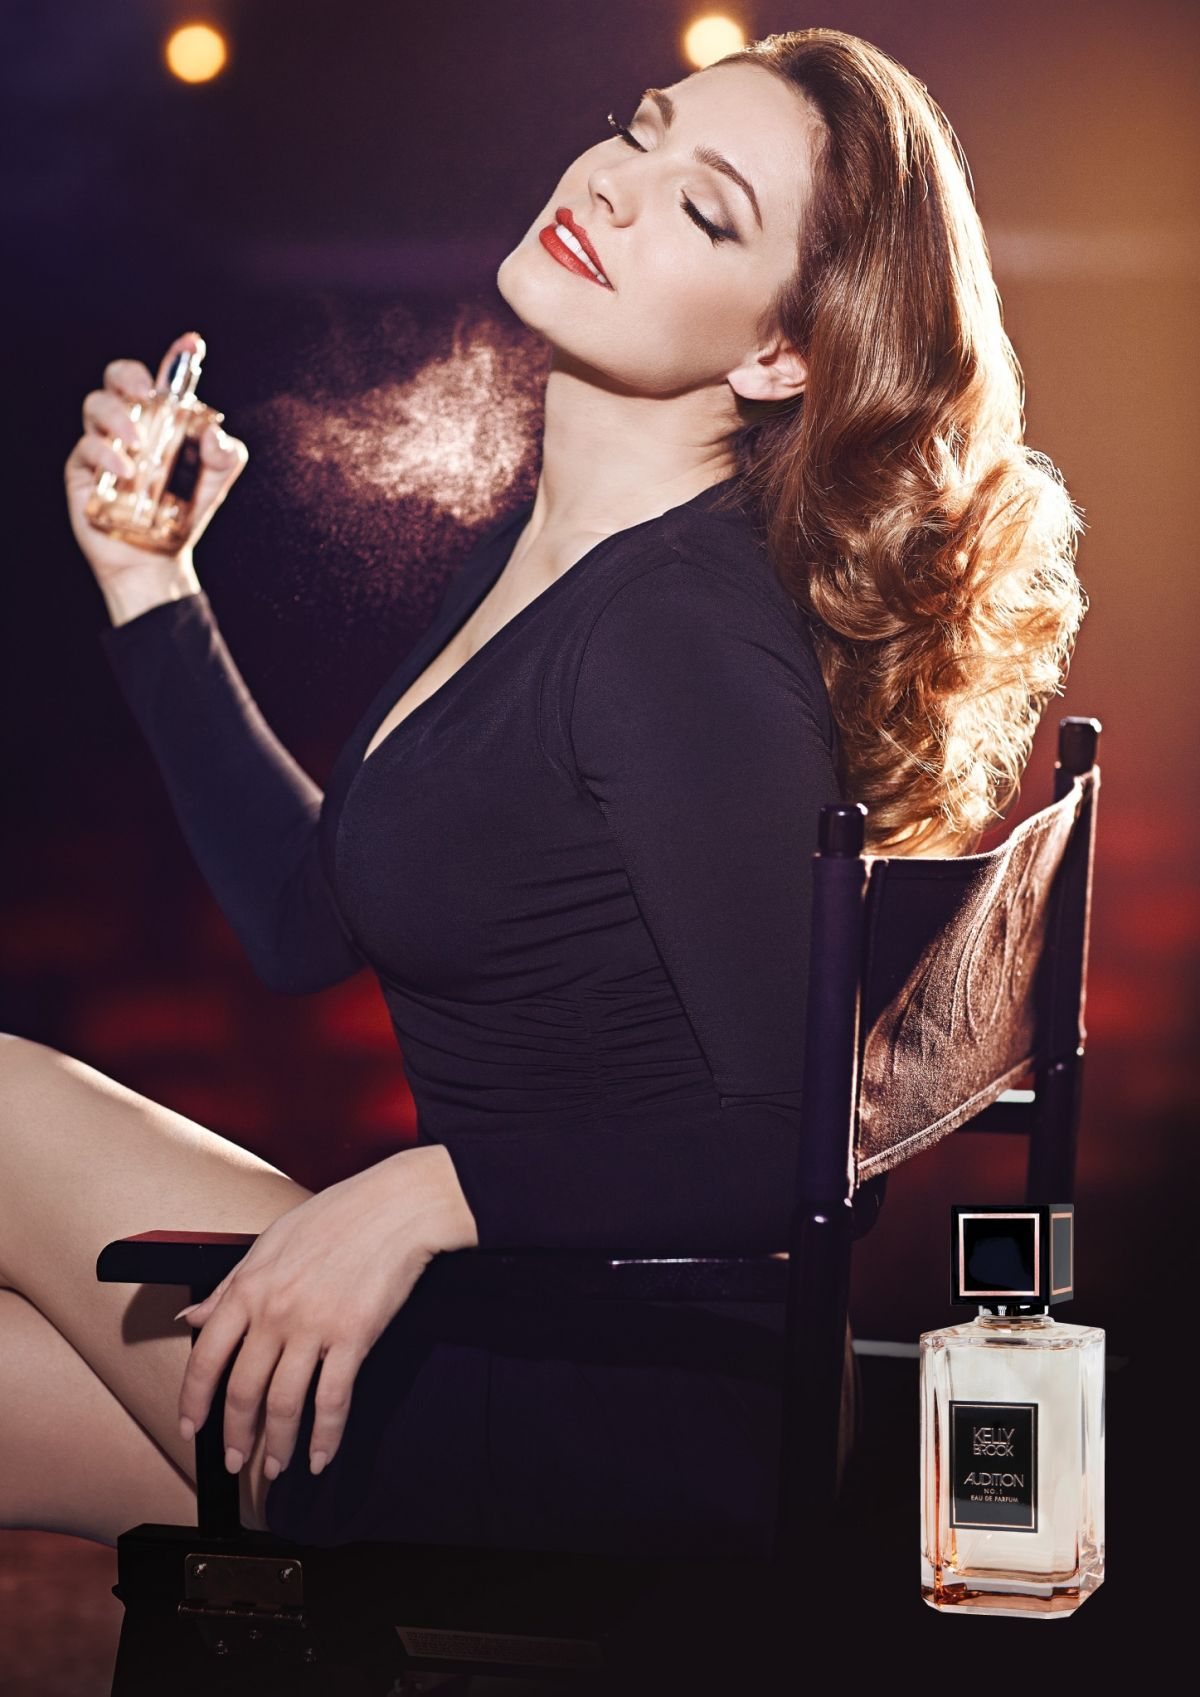 KELLY BROOK - Audition Perfume Promos